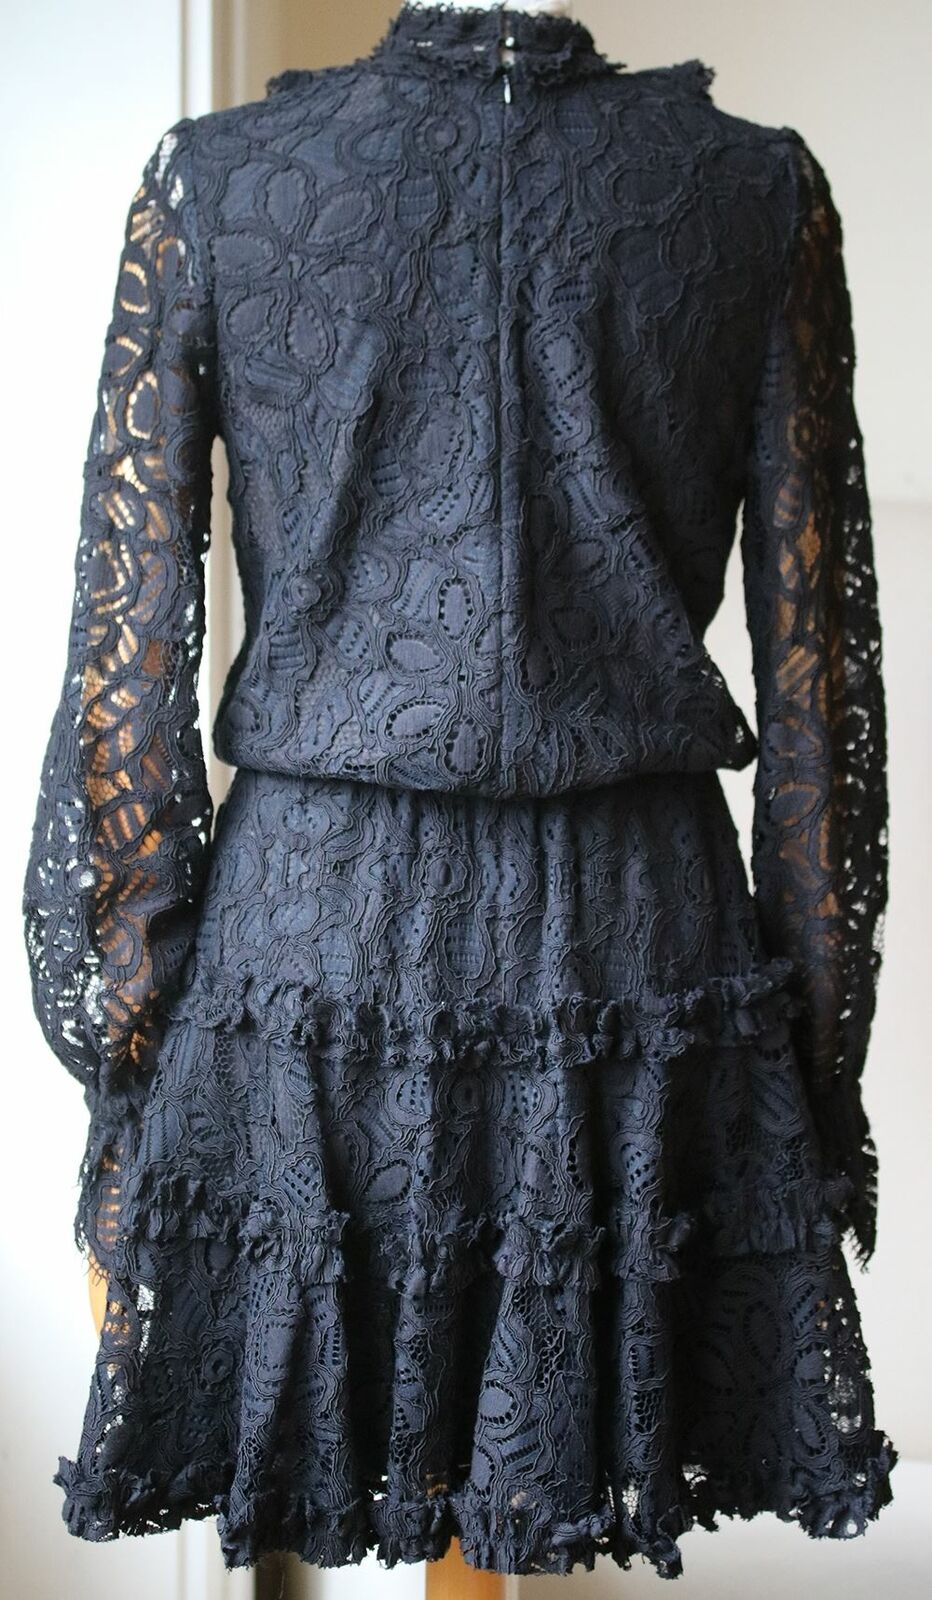 ALEXIS CATALINA LACE LACE LACE MINI DRESS MEDIUM 86ea0a